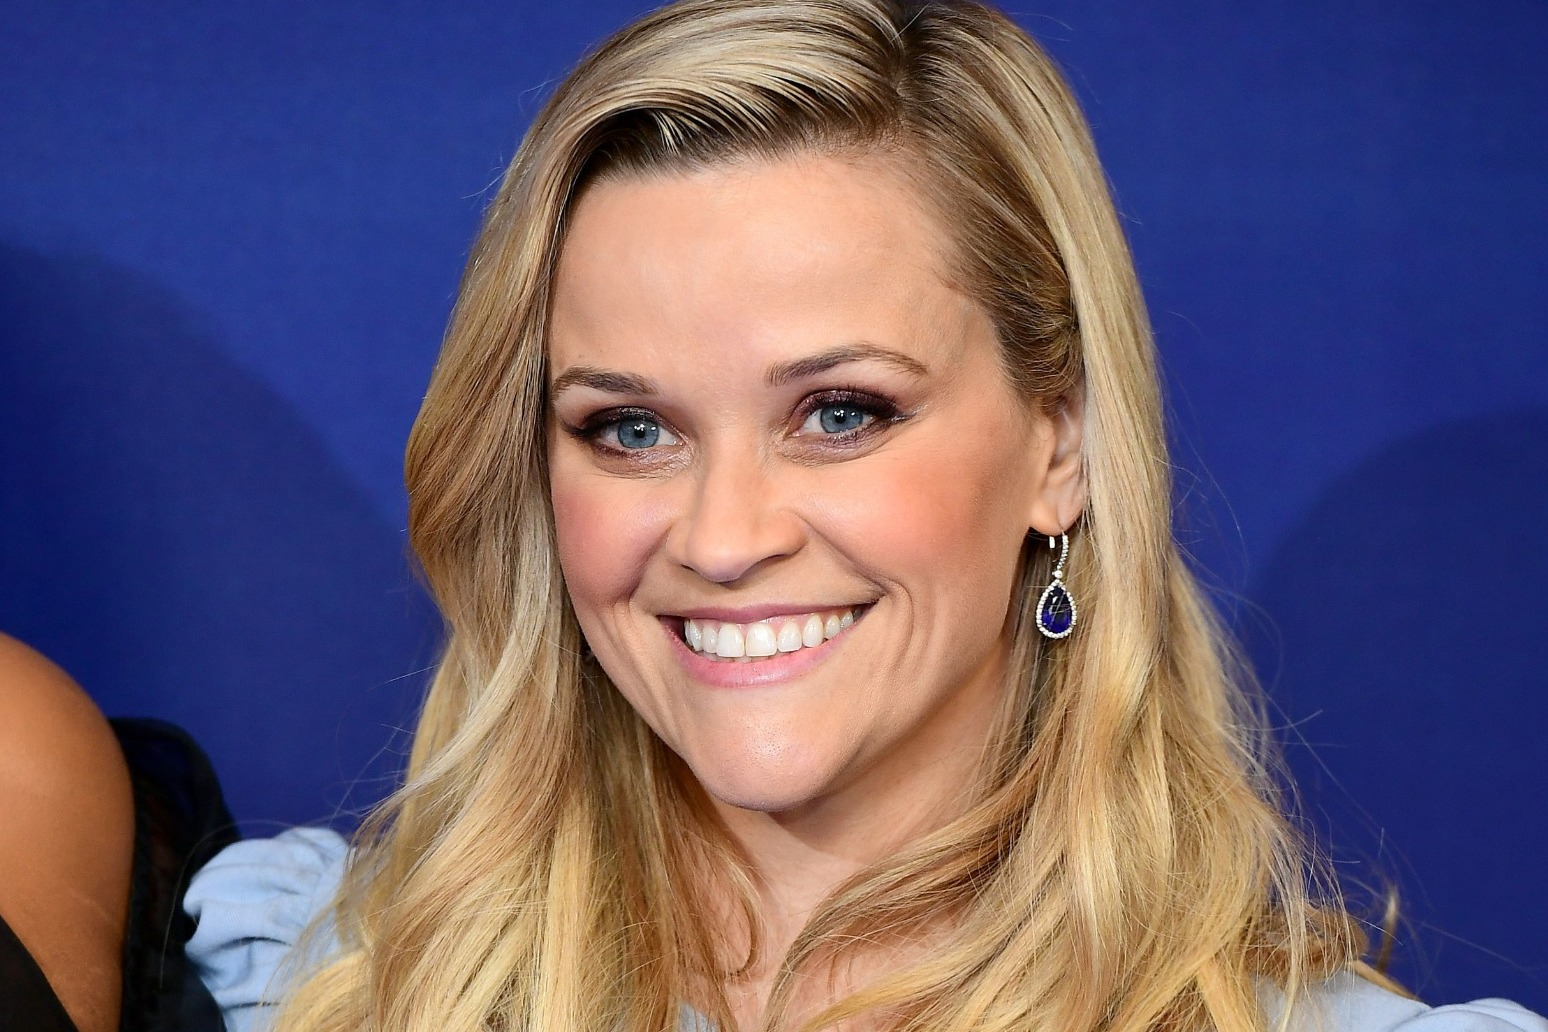 Reese Witherspoon to star in two Netflix rom-coms